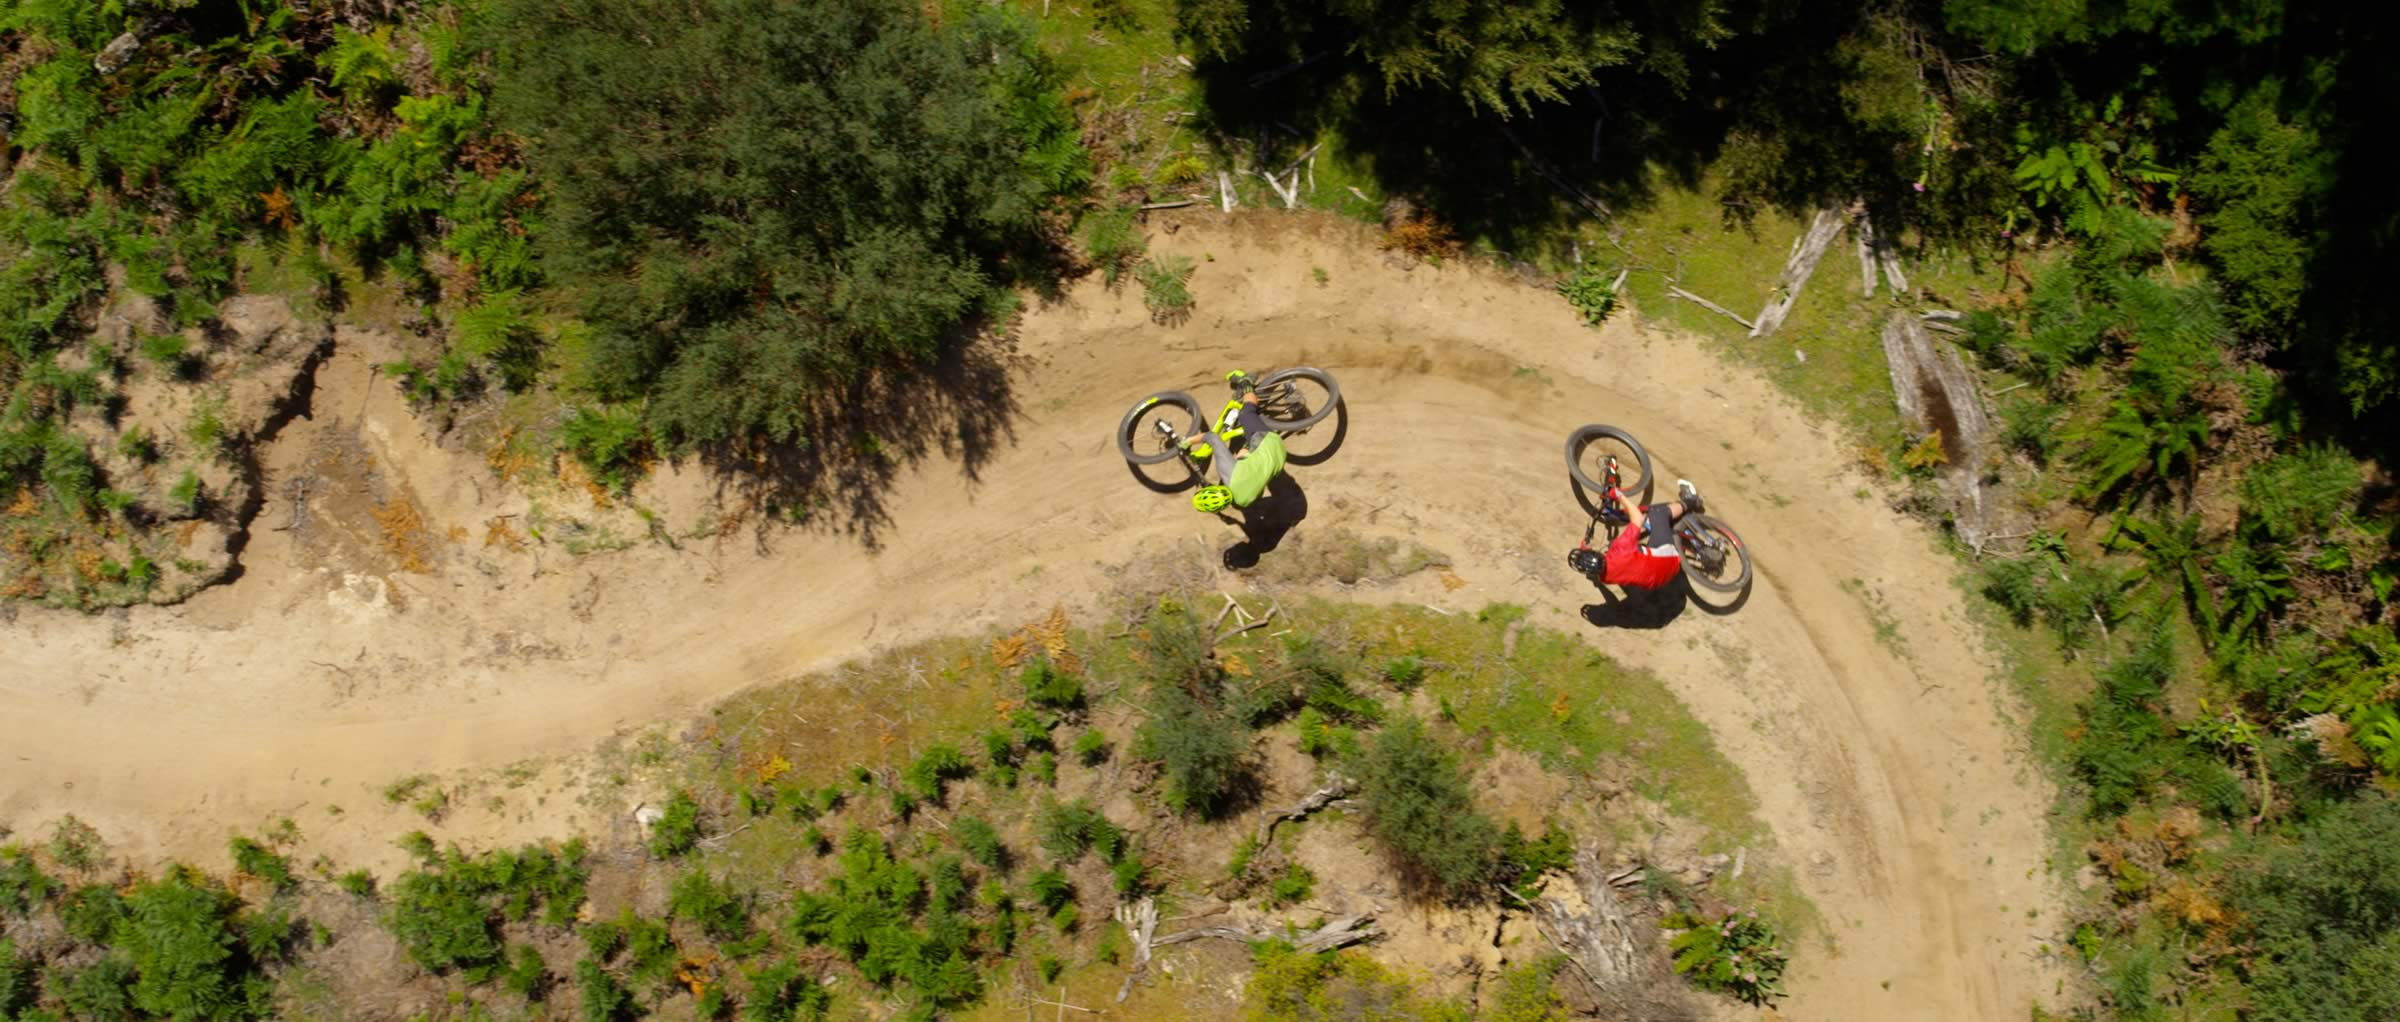 Specialized Bikes Destination Trail